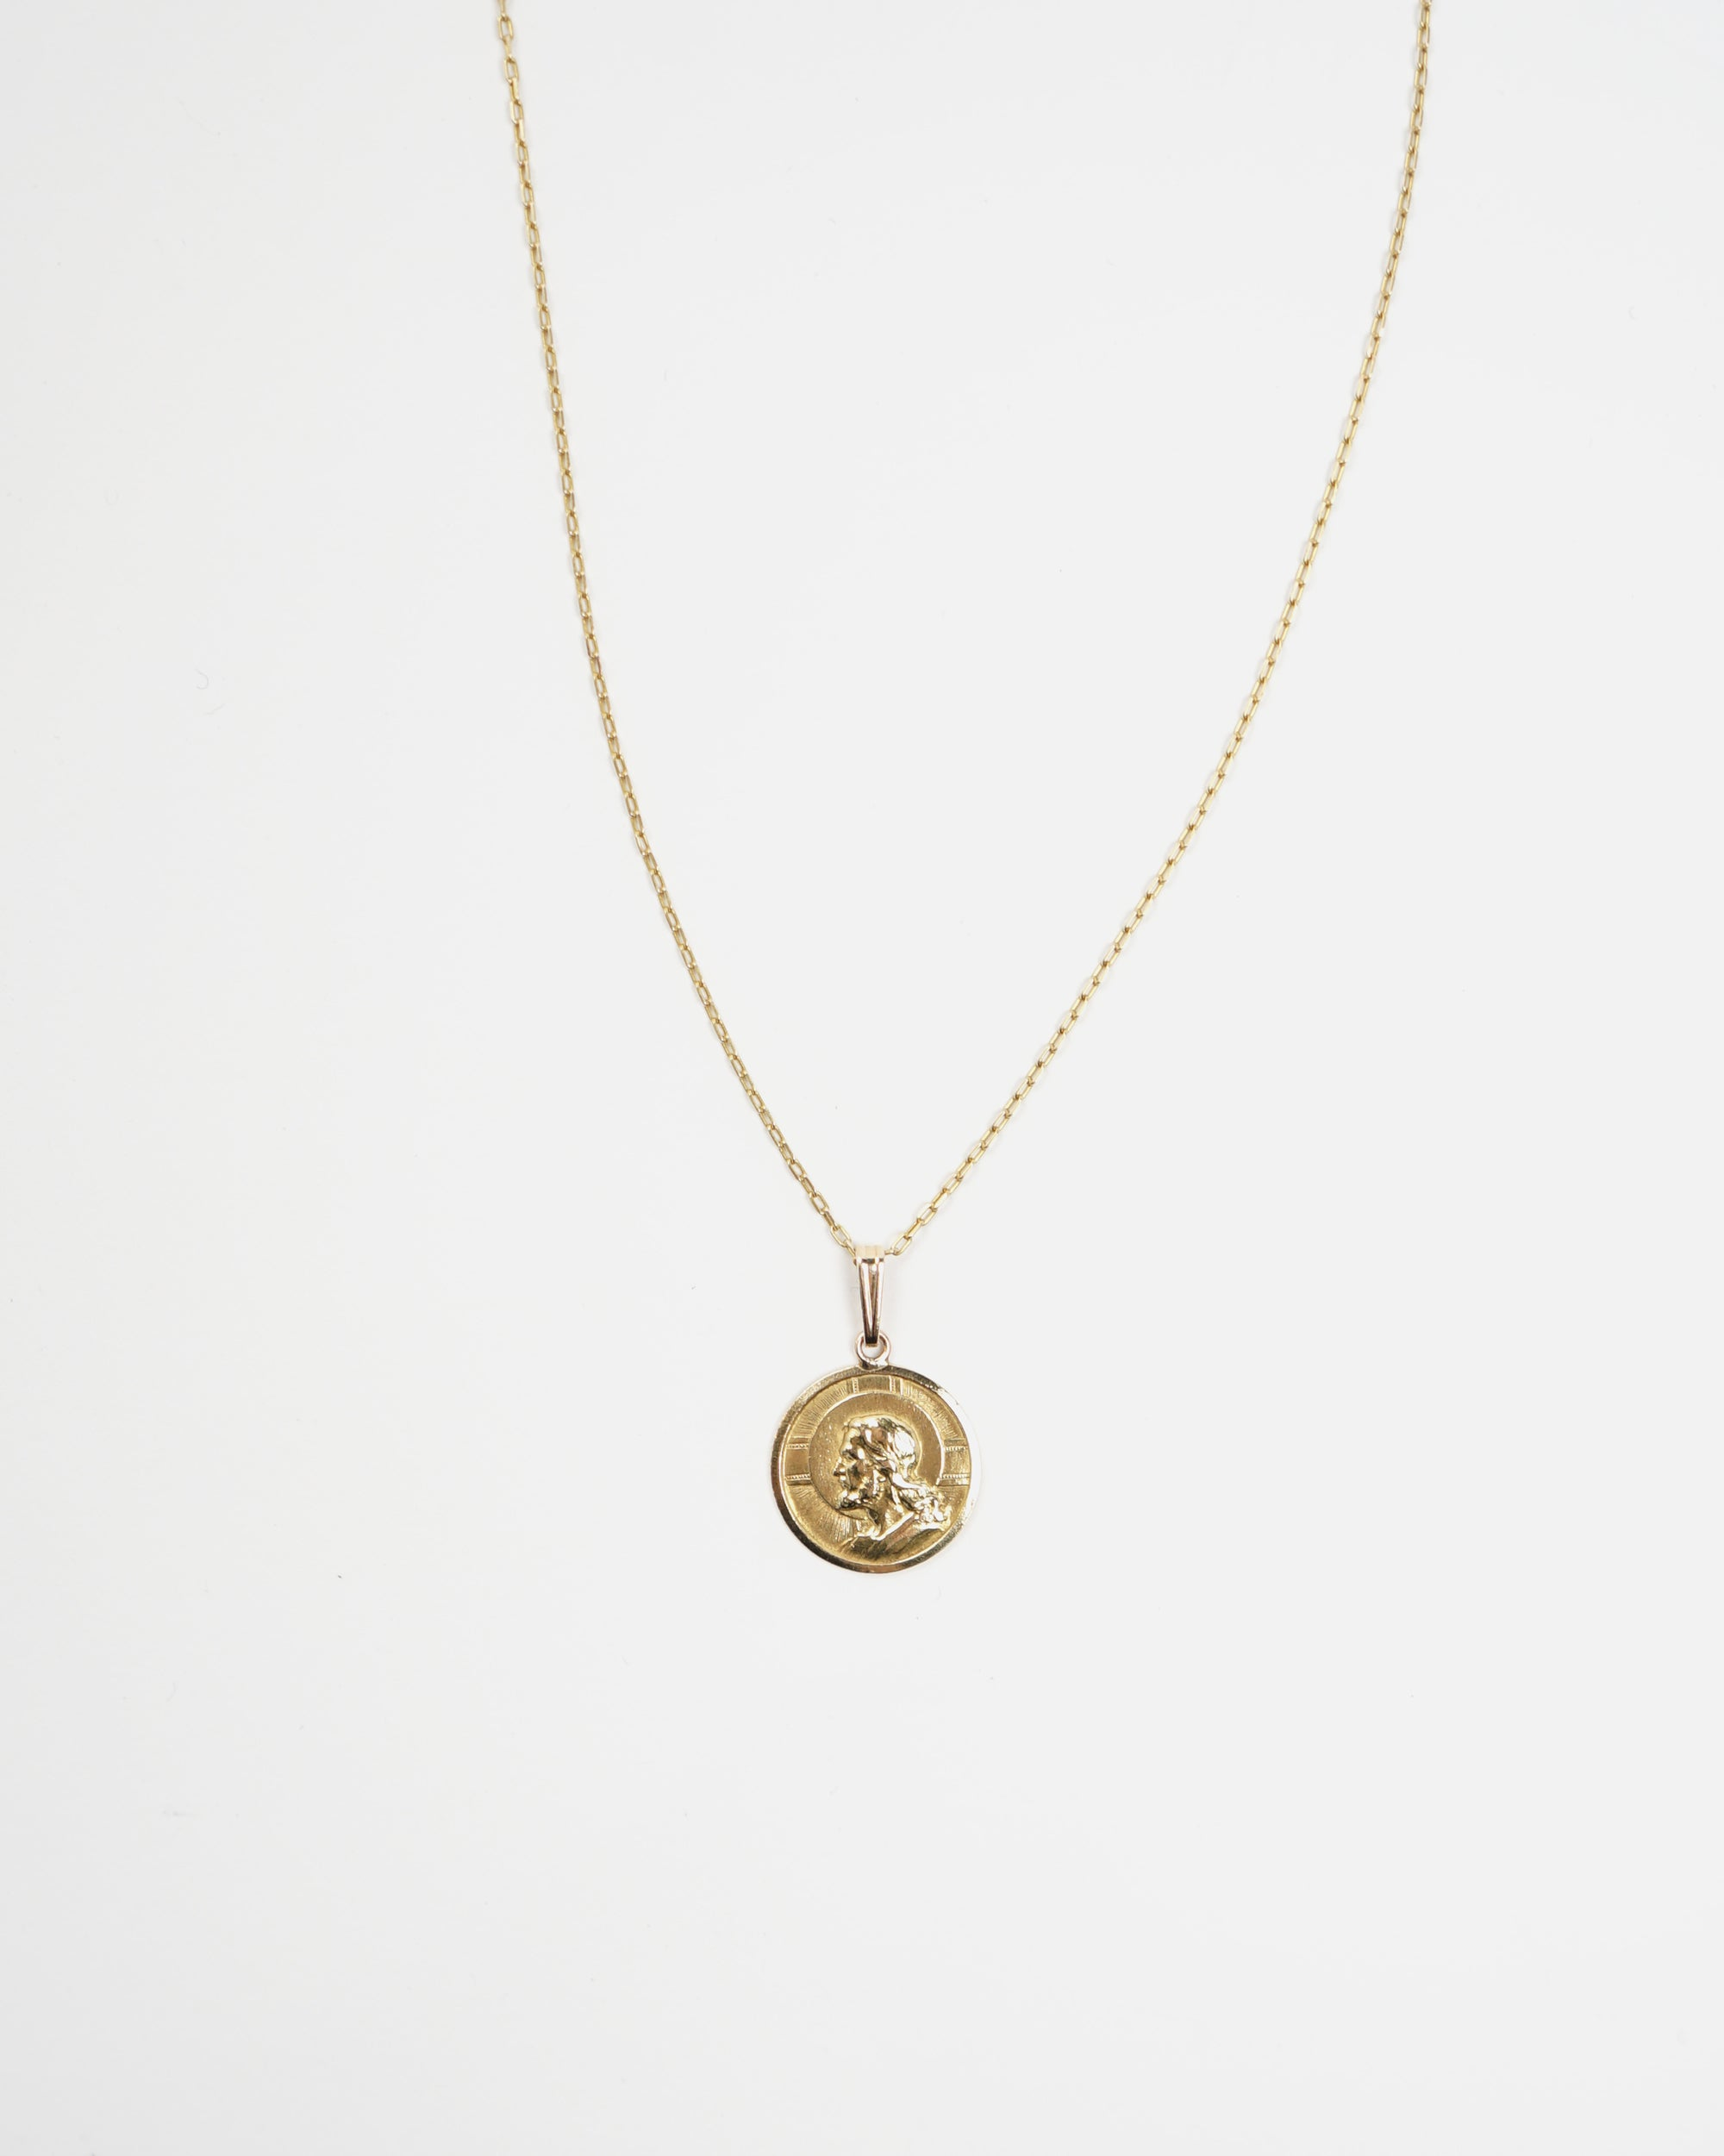 18k Coin Charm Necklace